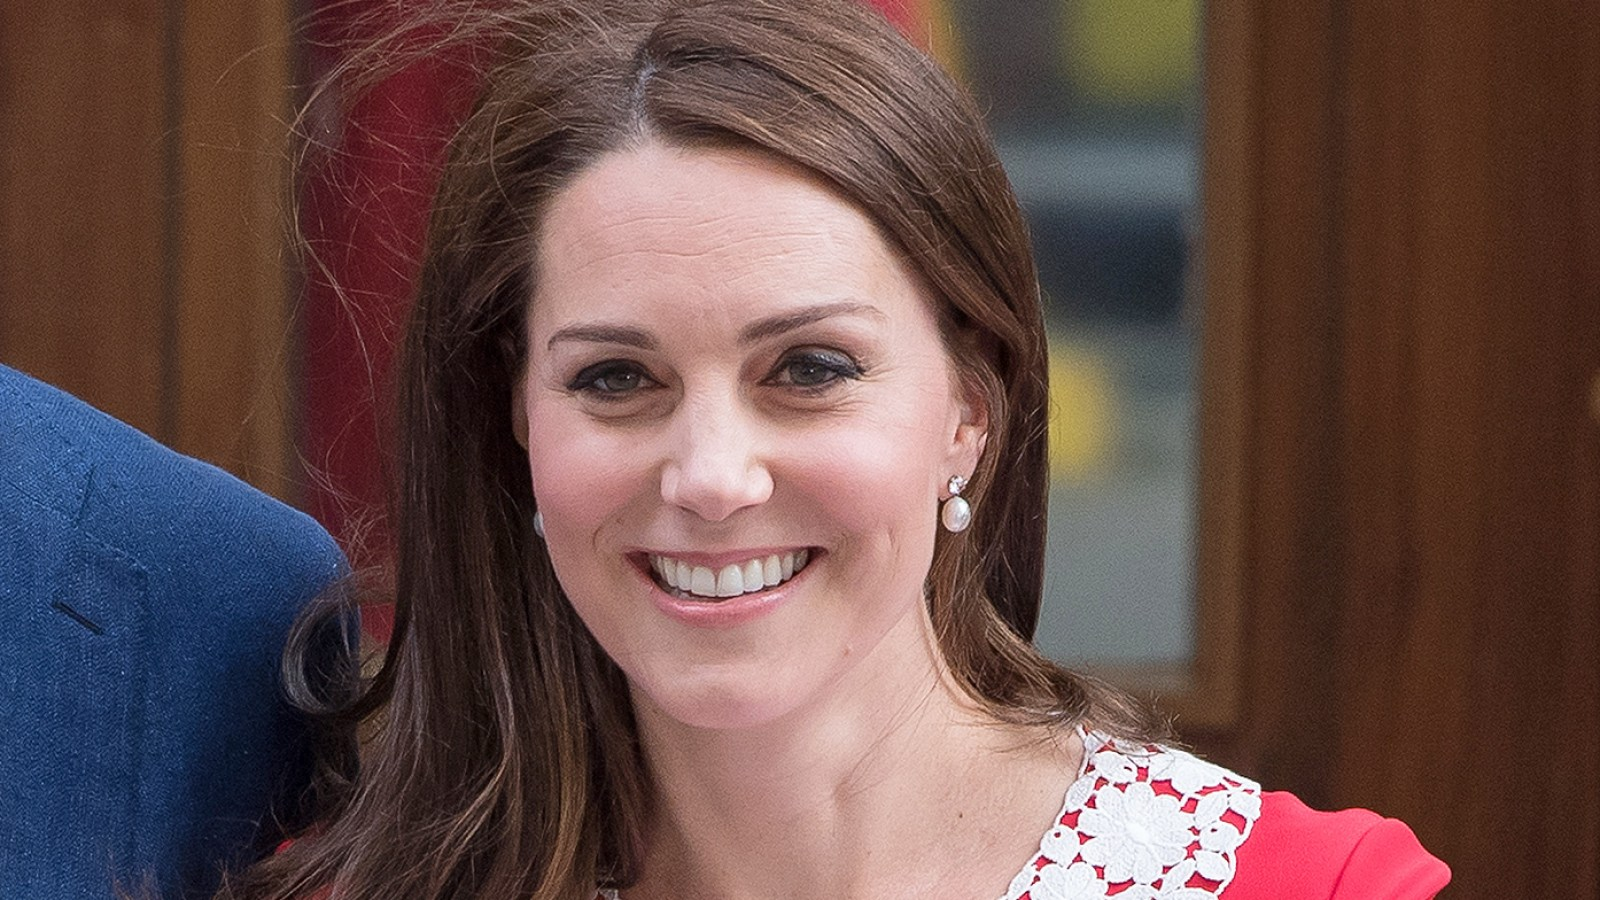 Duchess Kate Red Dress Is Like Rosemary\'s Baby Outfit: Twitter Reacts